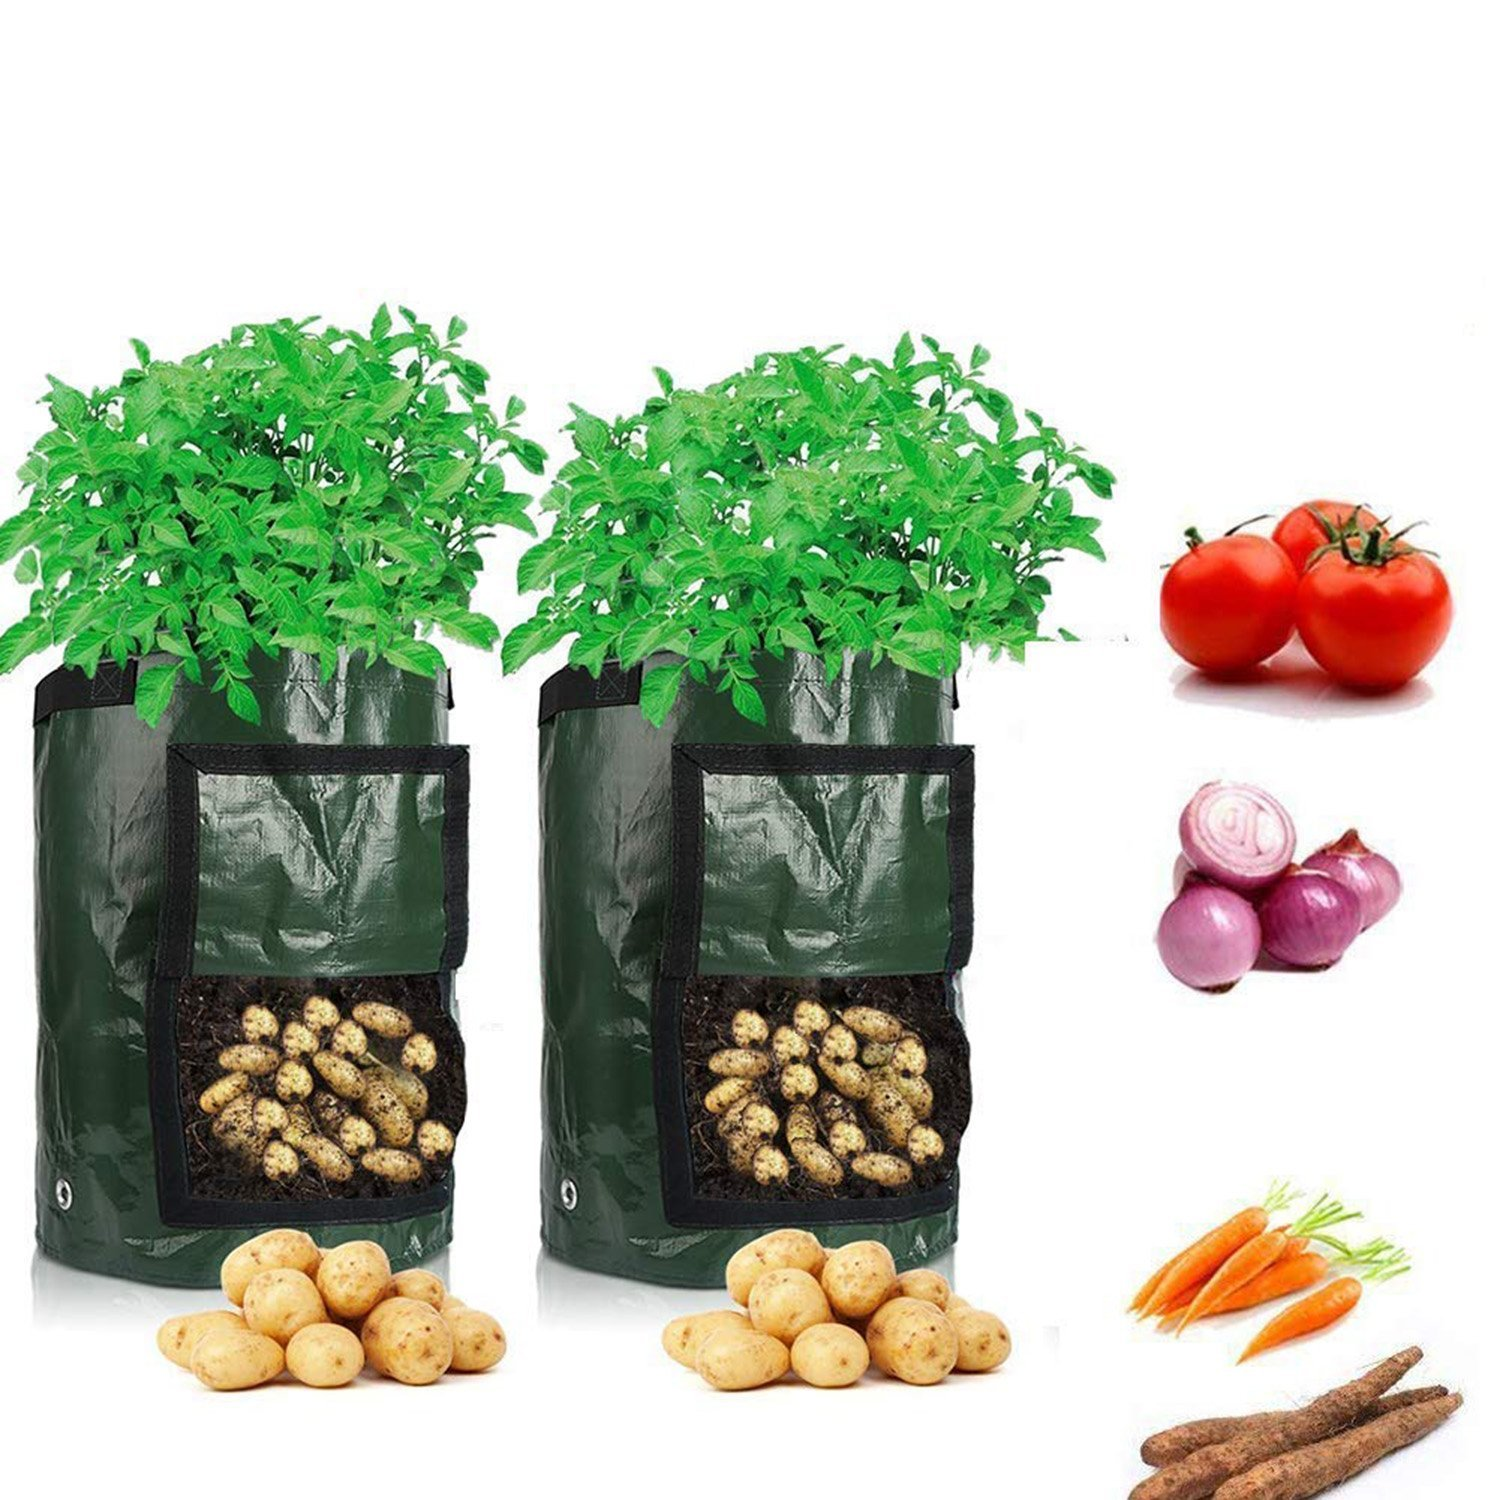 Potato Planting Container Bag Vegetable Gardening Tool